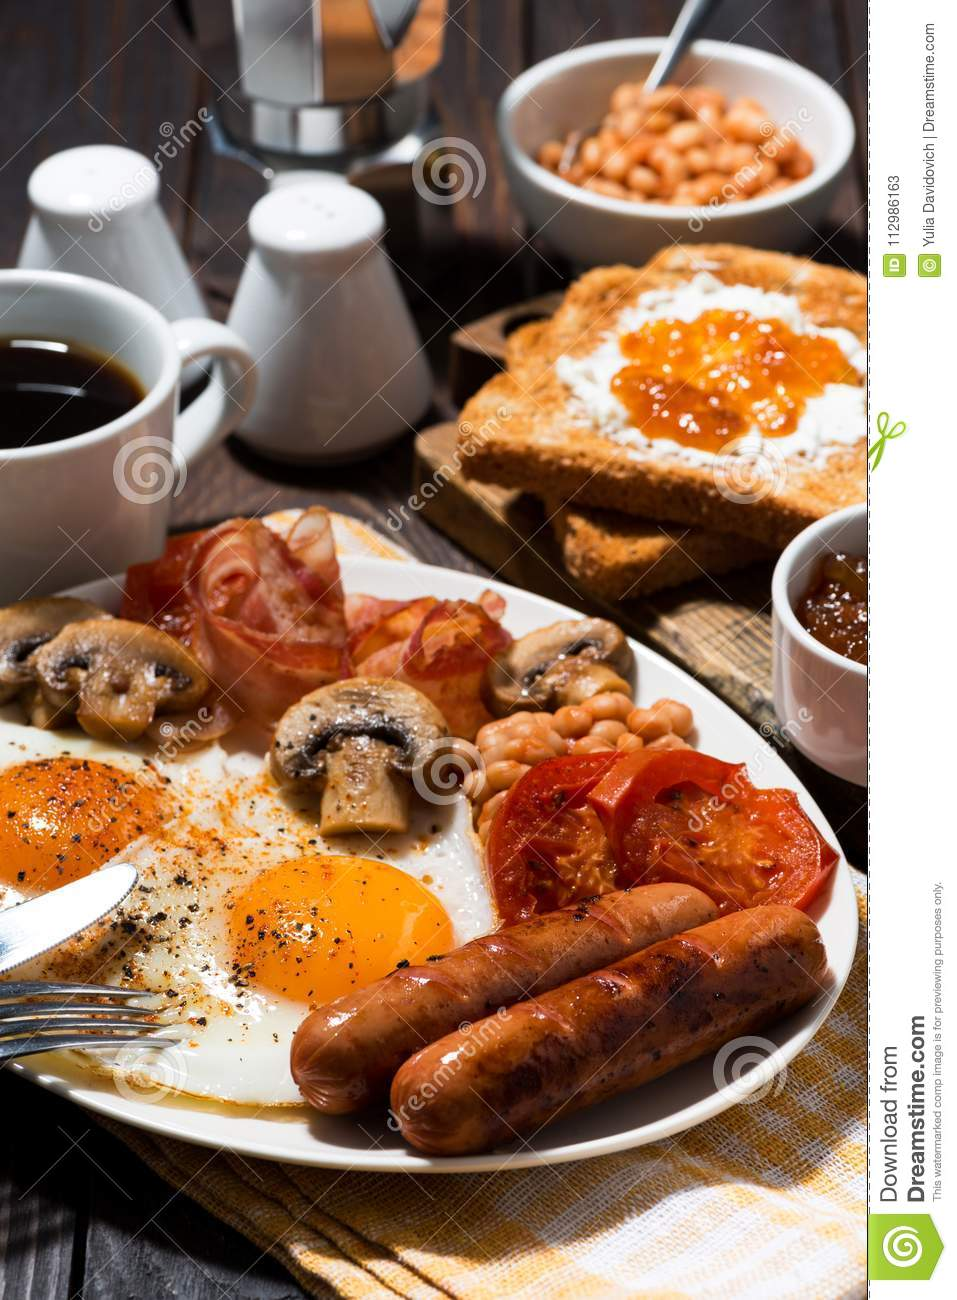 Fried eggs with bacon, sausages and vegetables, vertical closeup